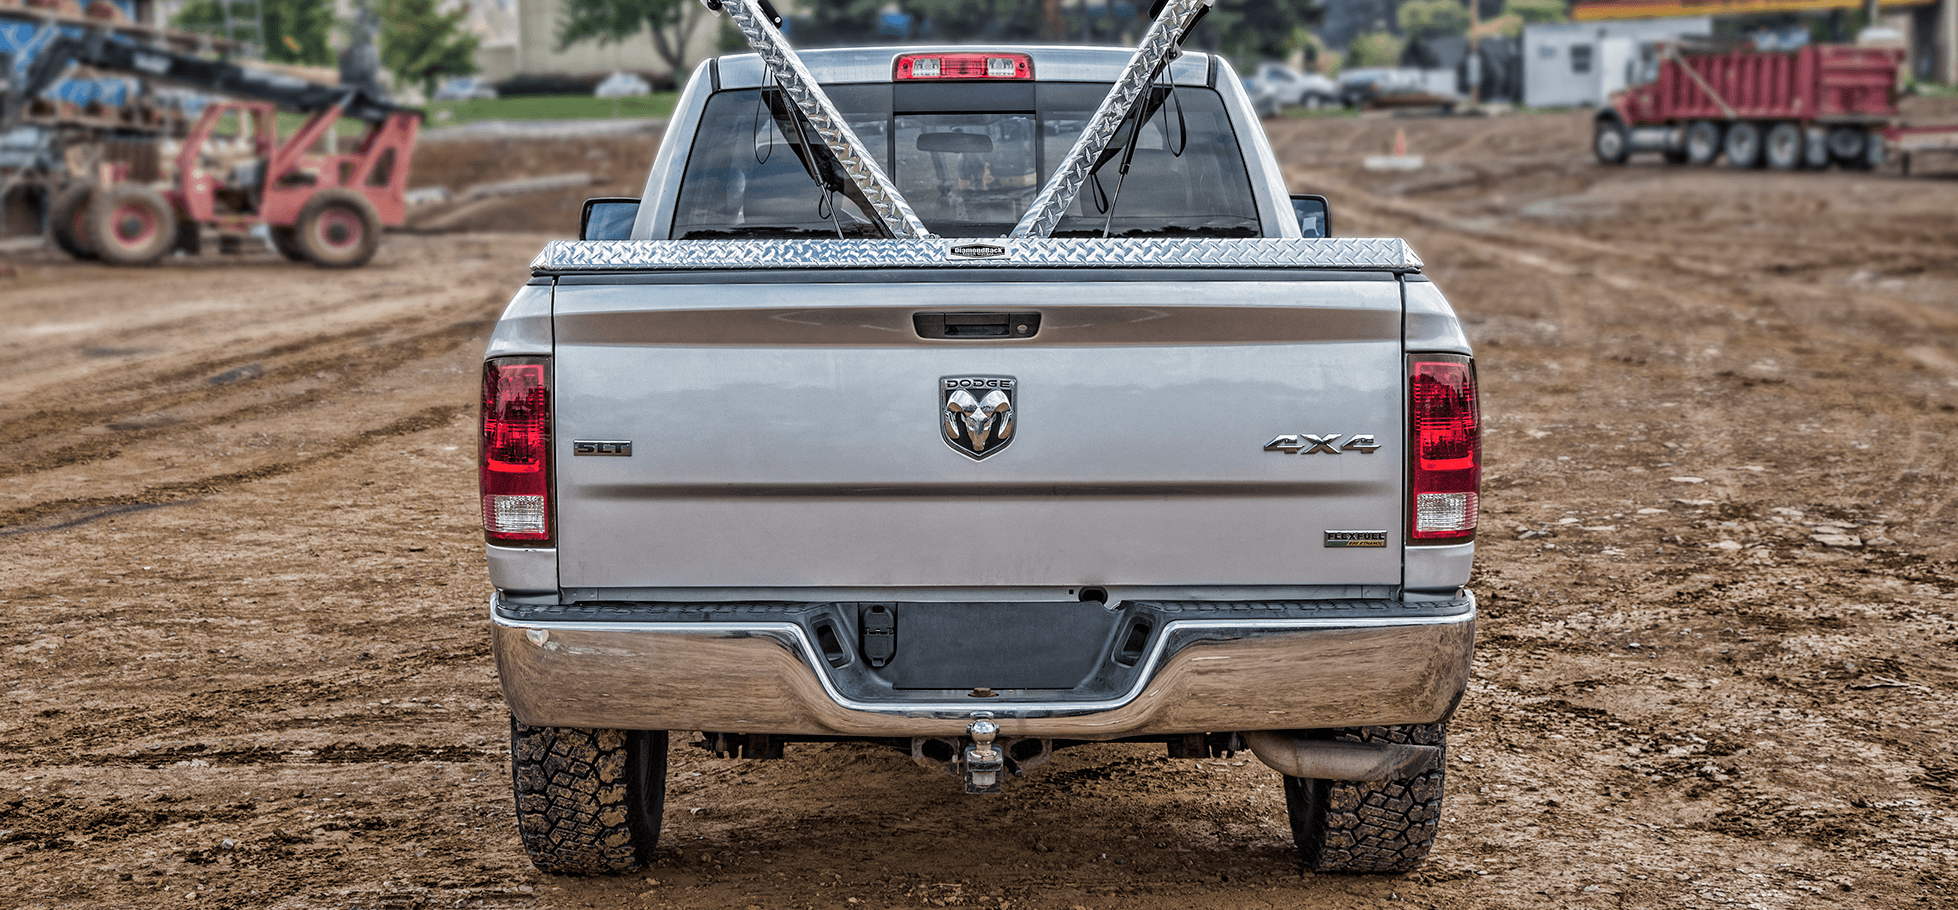 open 180 aluminum tonneau cover at construction site